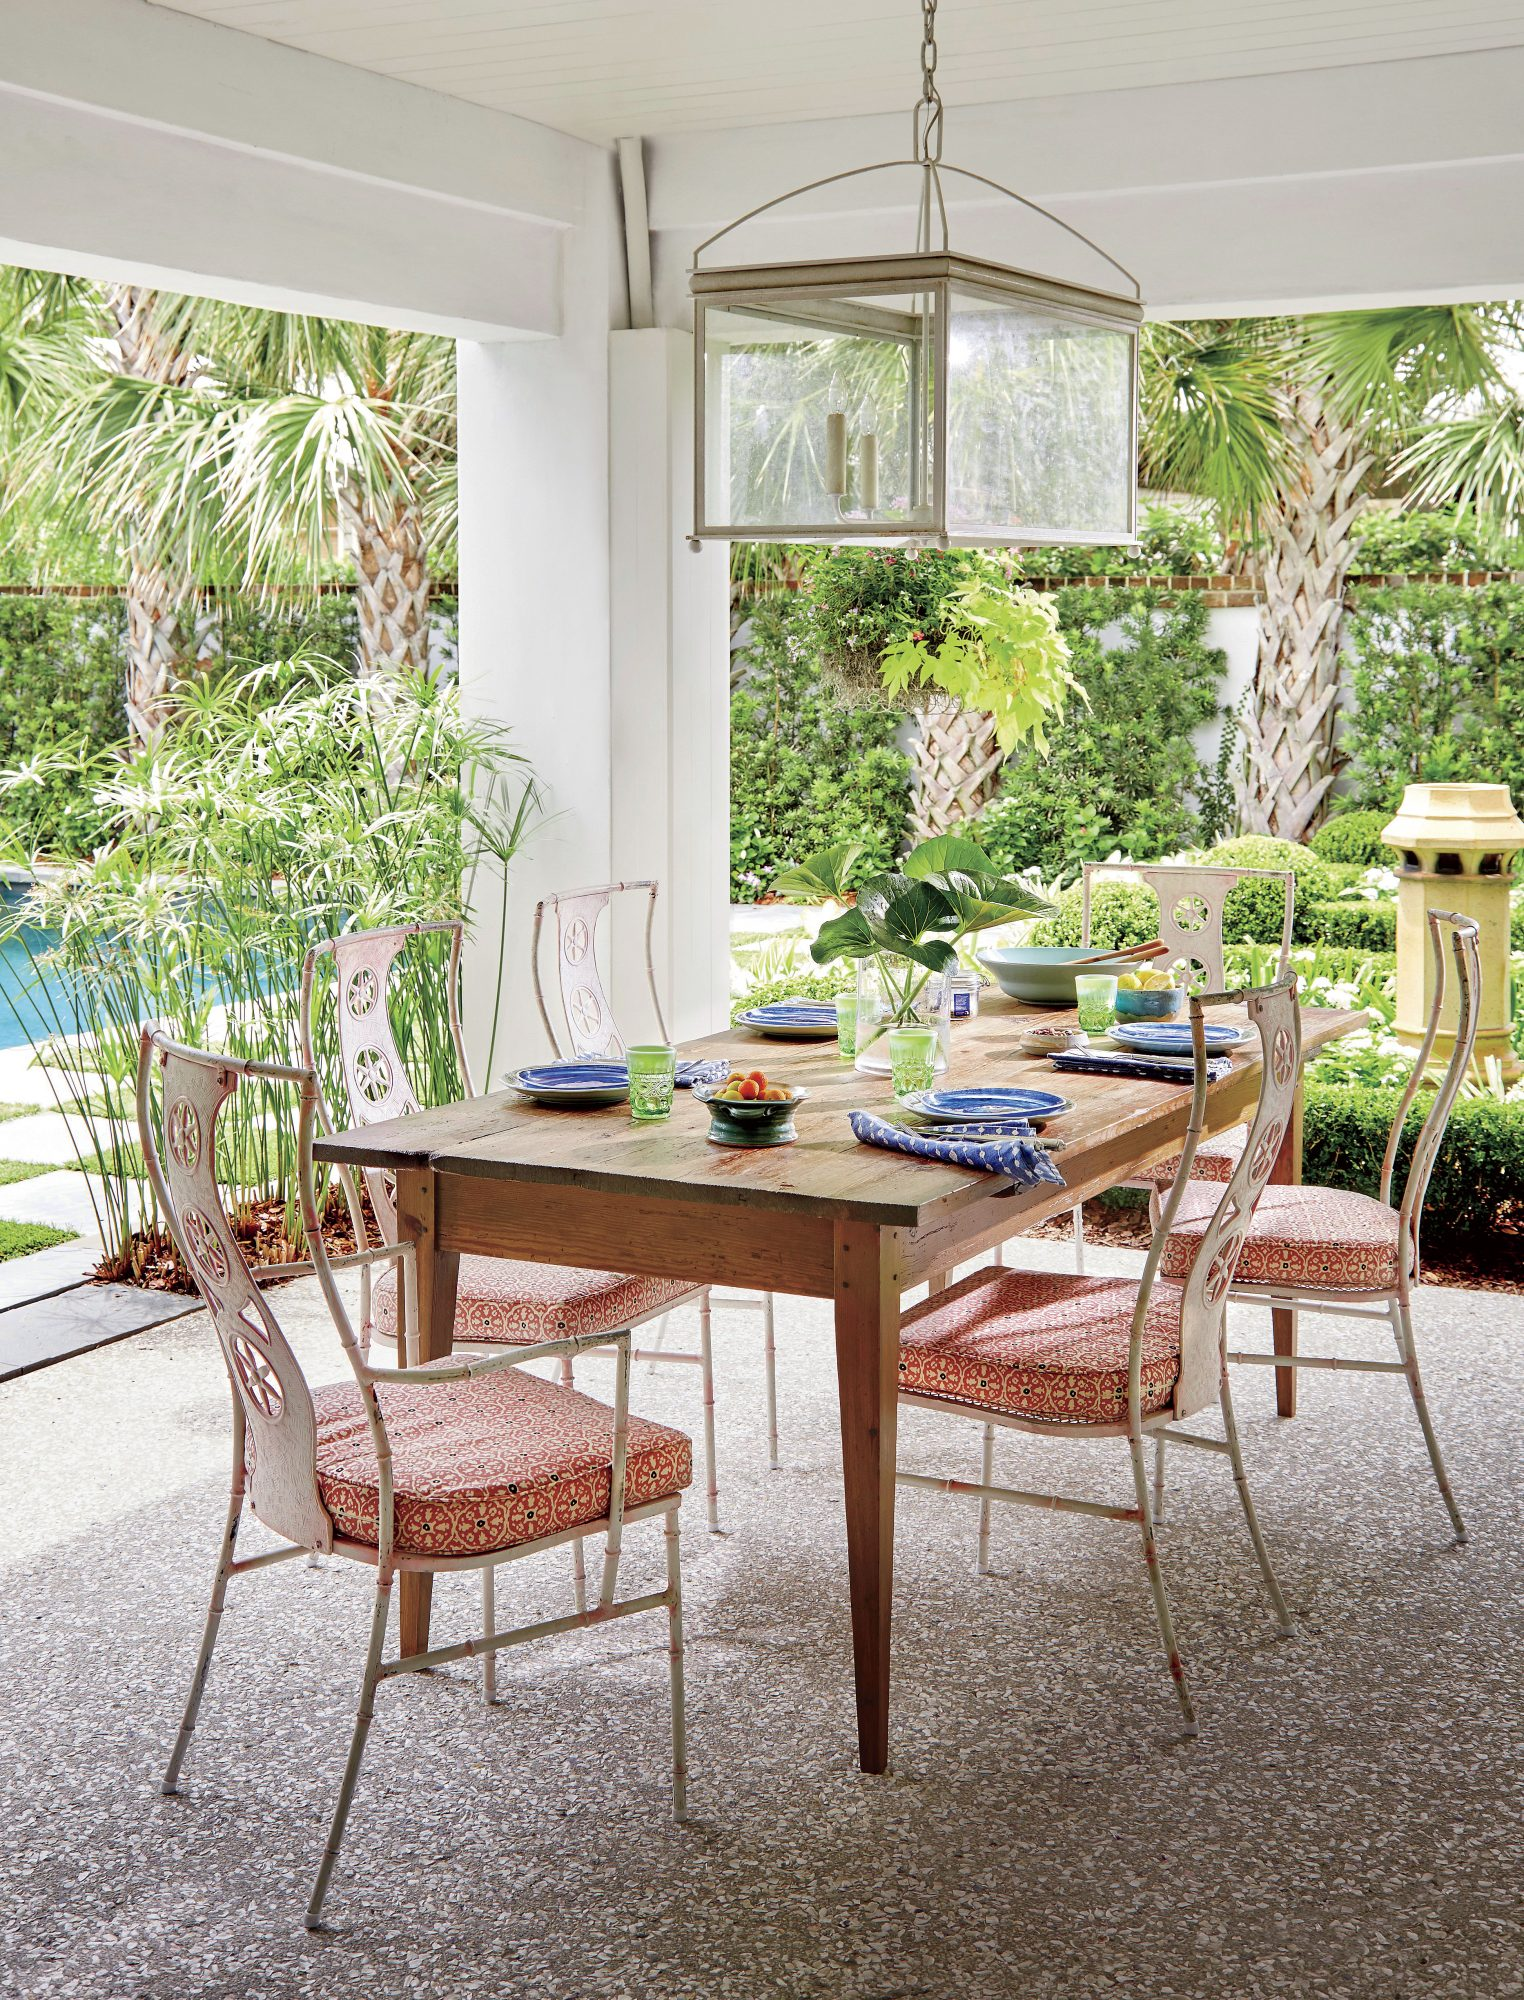 Jenny Keenan Designed Outdoor Dining Room for Her Parents House in Mount Pleasant, SC